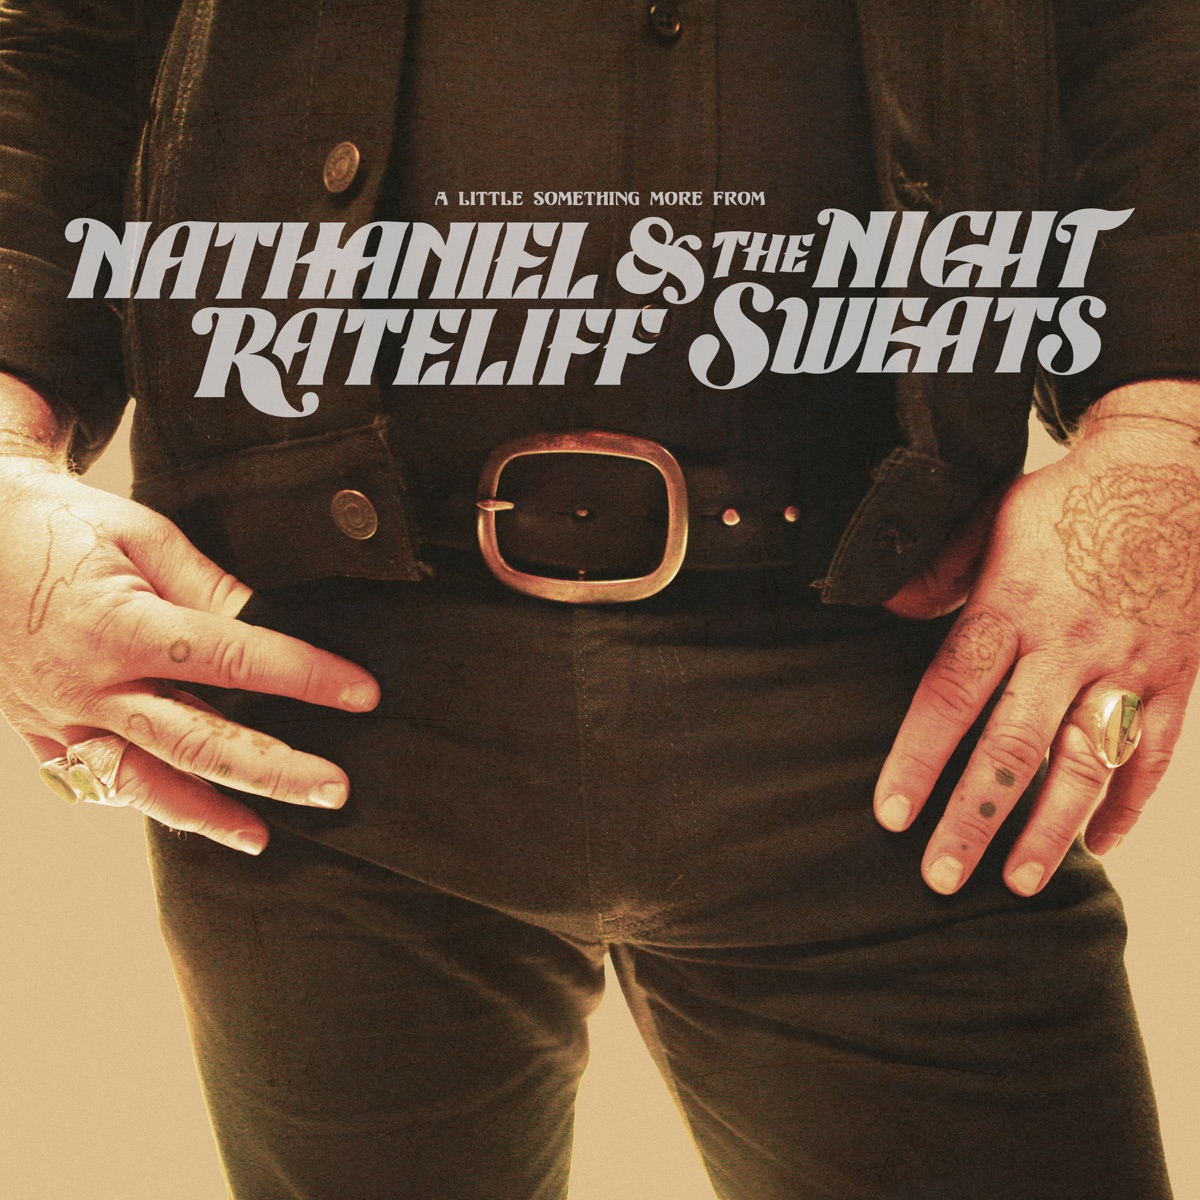 A Little Something More From Nathaniel Rateliff  The Night Sweats CD cover